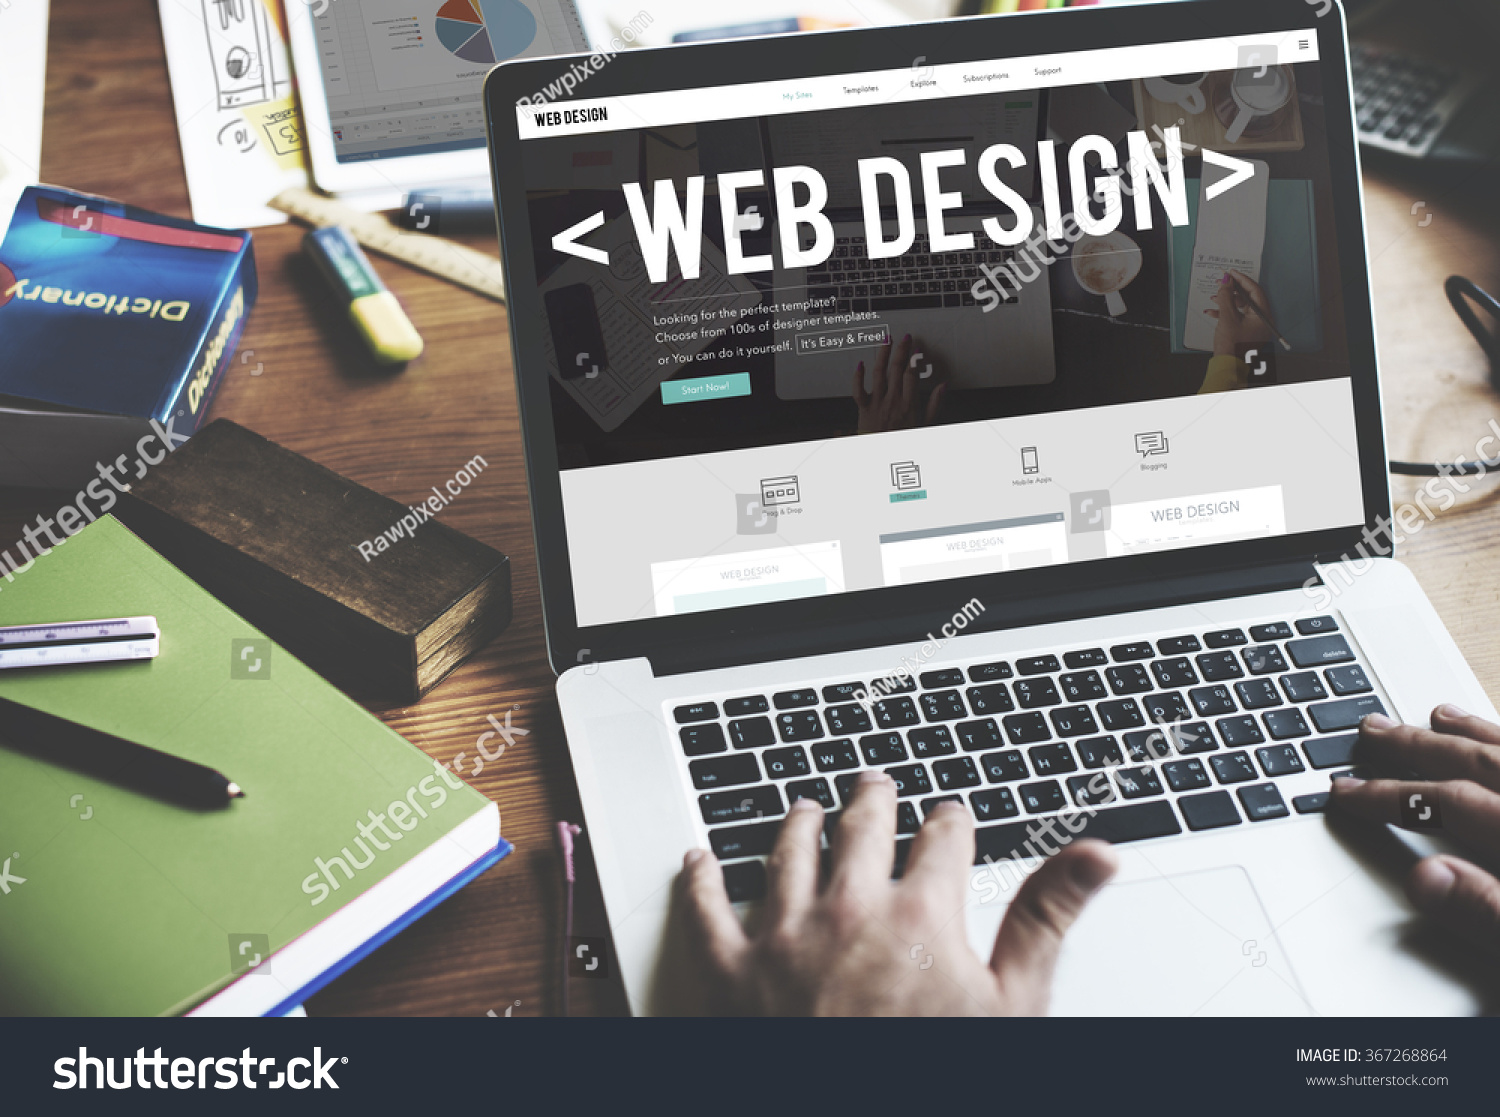 web design website homepage ideas programming stock photo 367268864